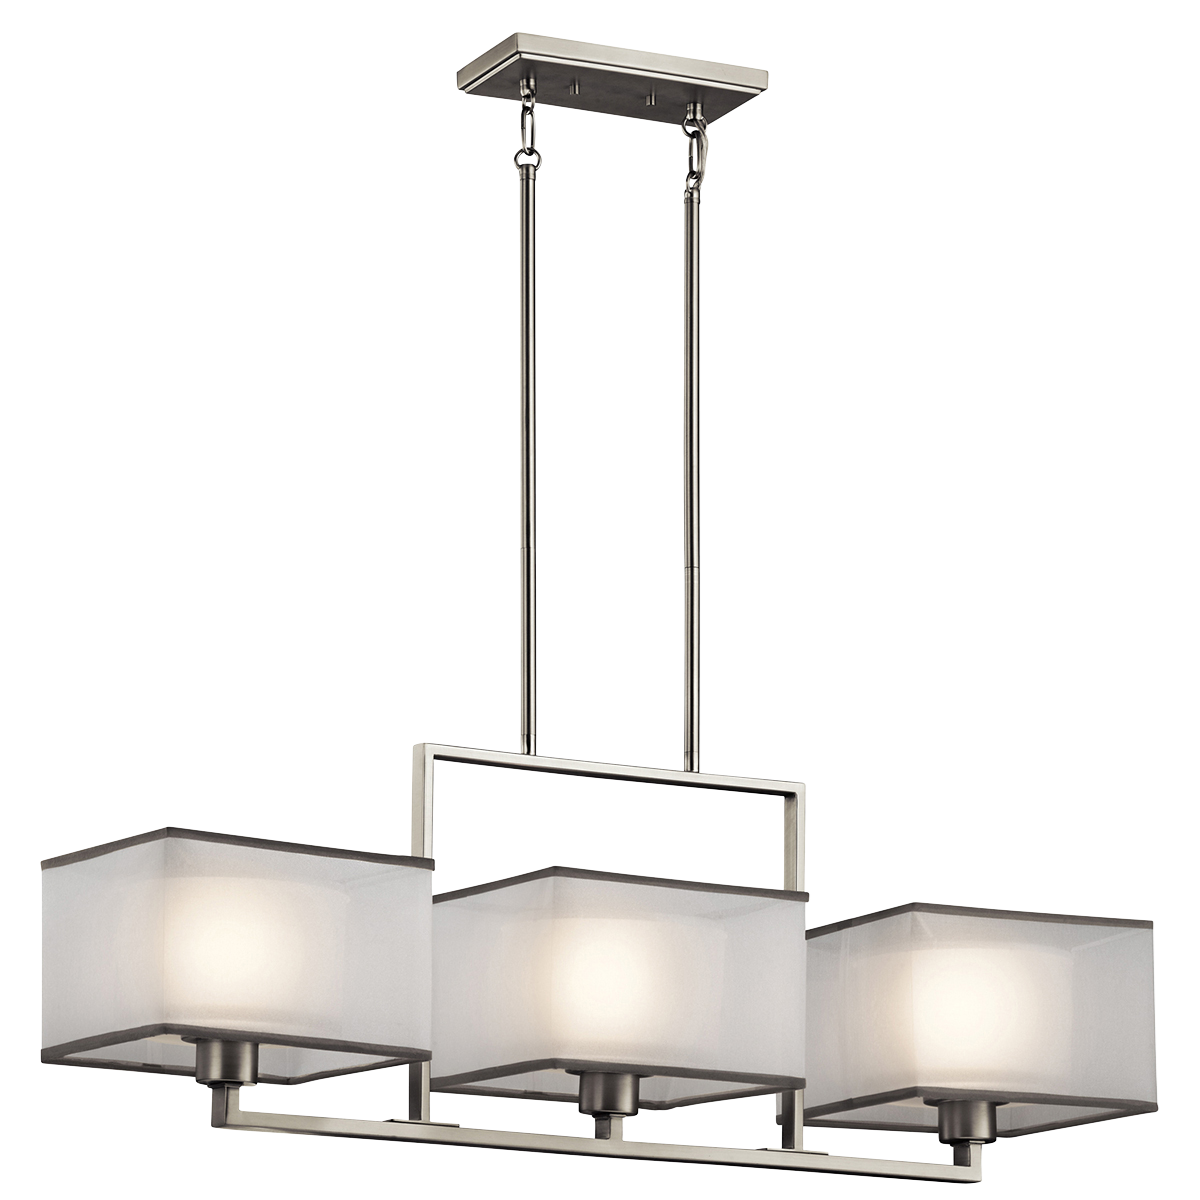 Brushed Nickel Kitchen Light Fixtures Kichler 3 Light Chandelier Linear Kailey Collection Tucson